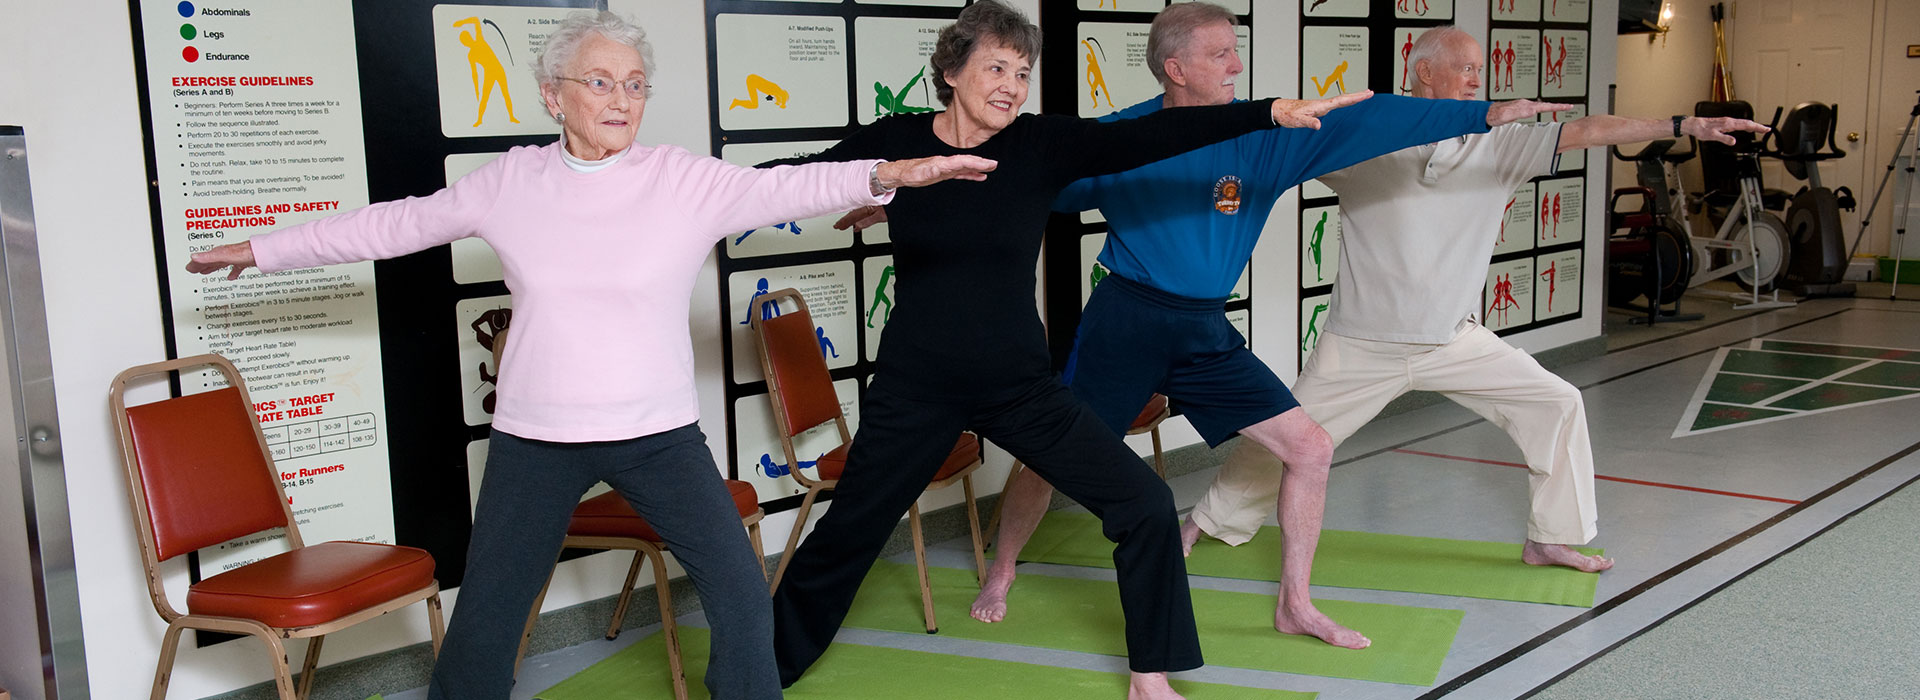 Thirwood Place fitness class